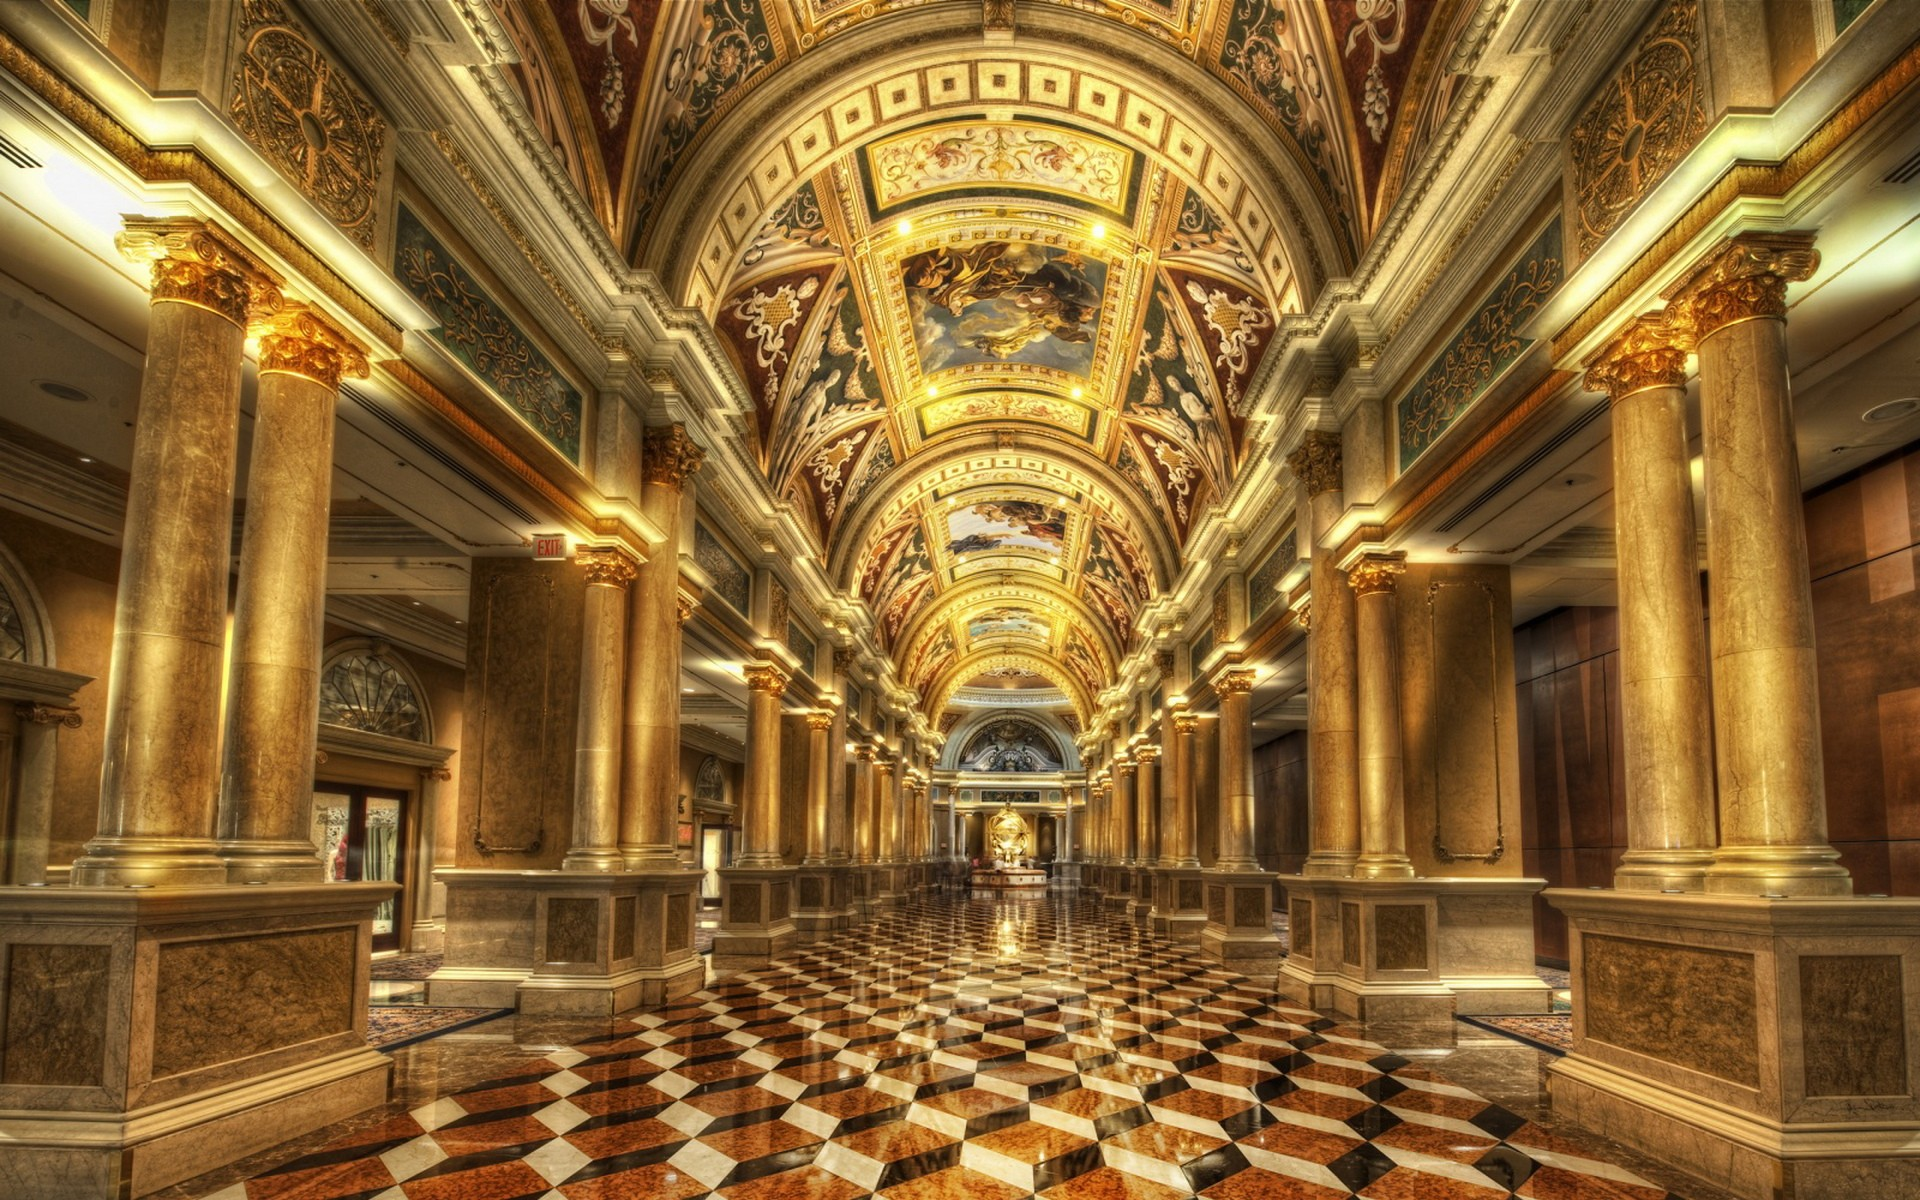 17 stunning hd palace wallpapers - Wallpaper interior design pictures ...